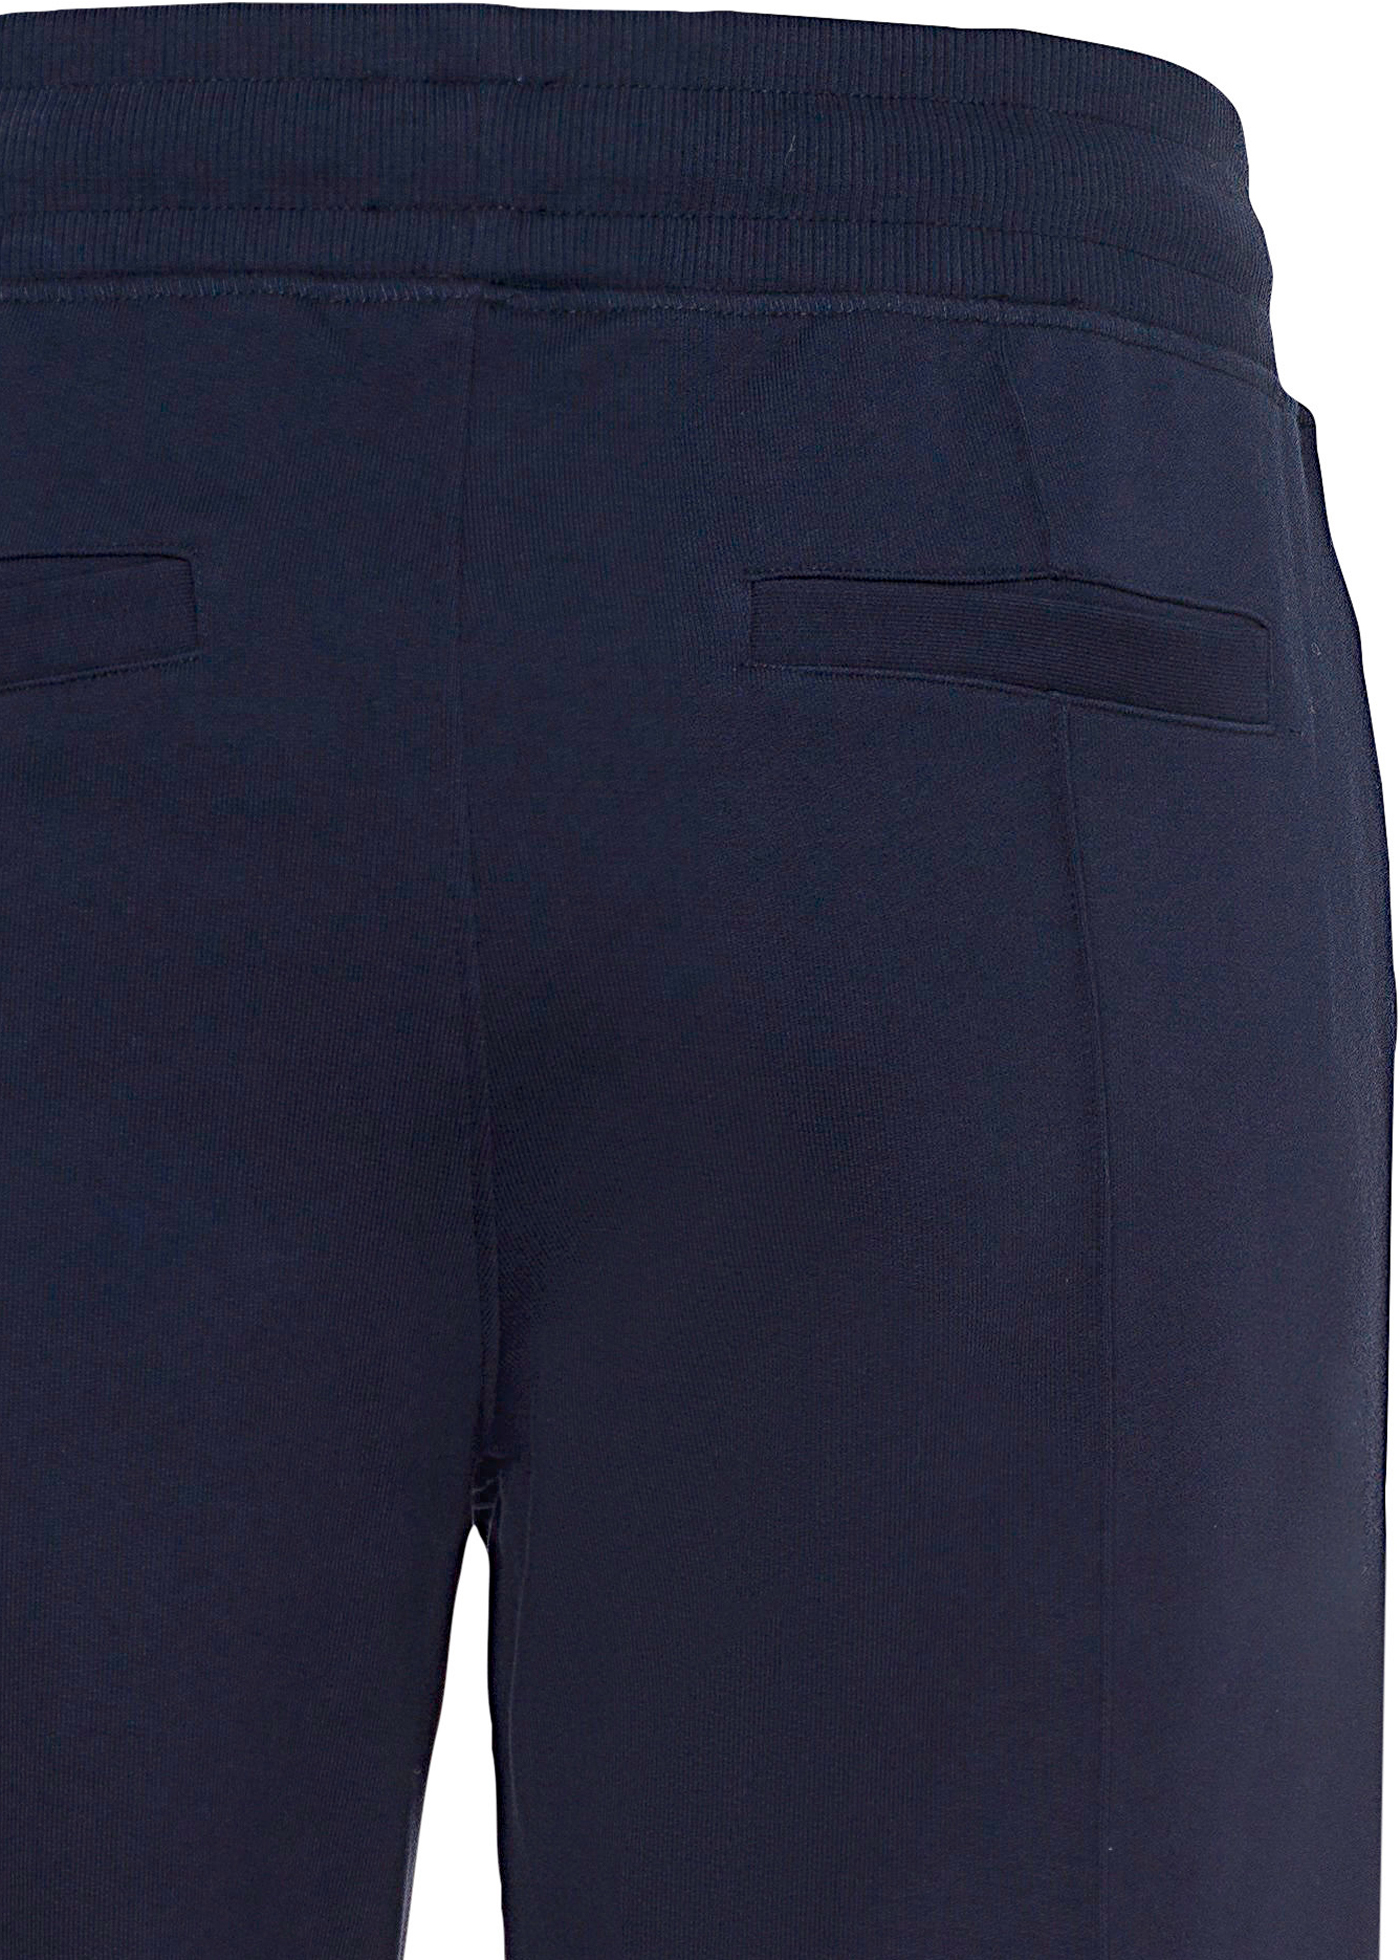 Cotton Jersey Pant image number 3